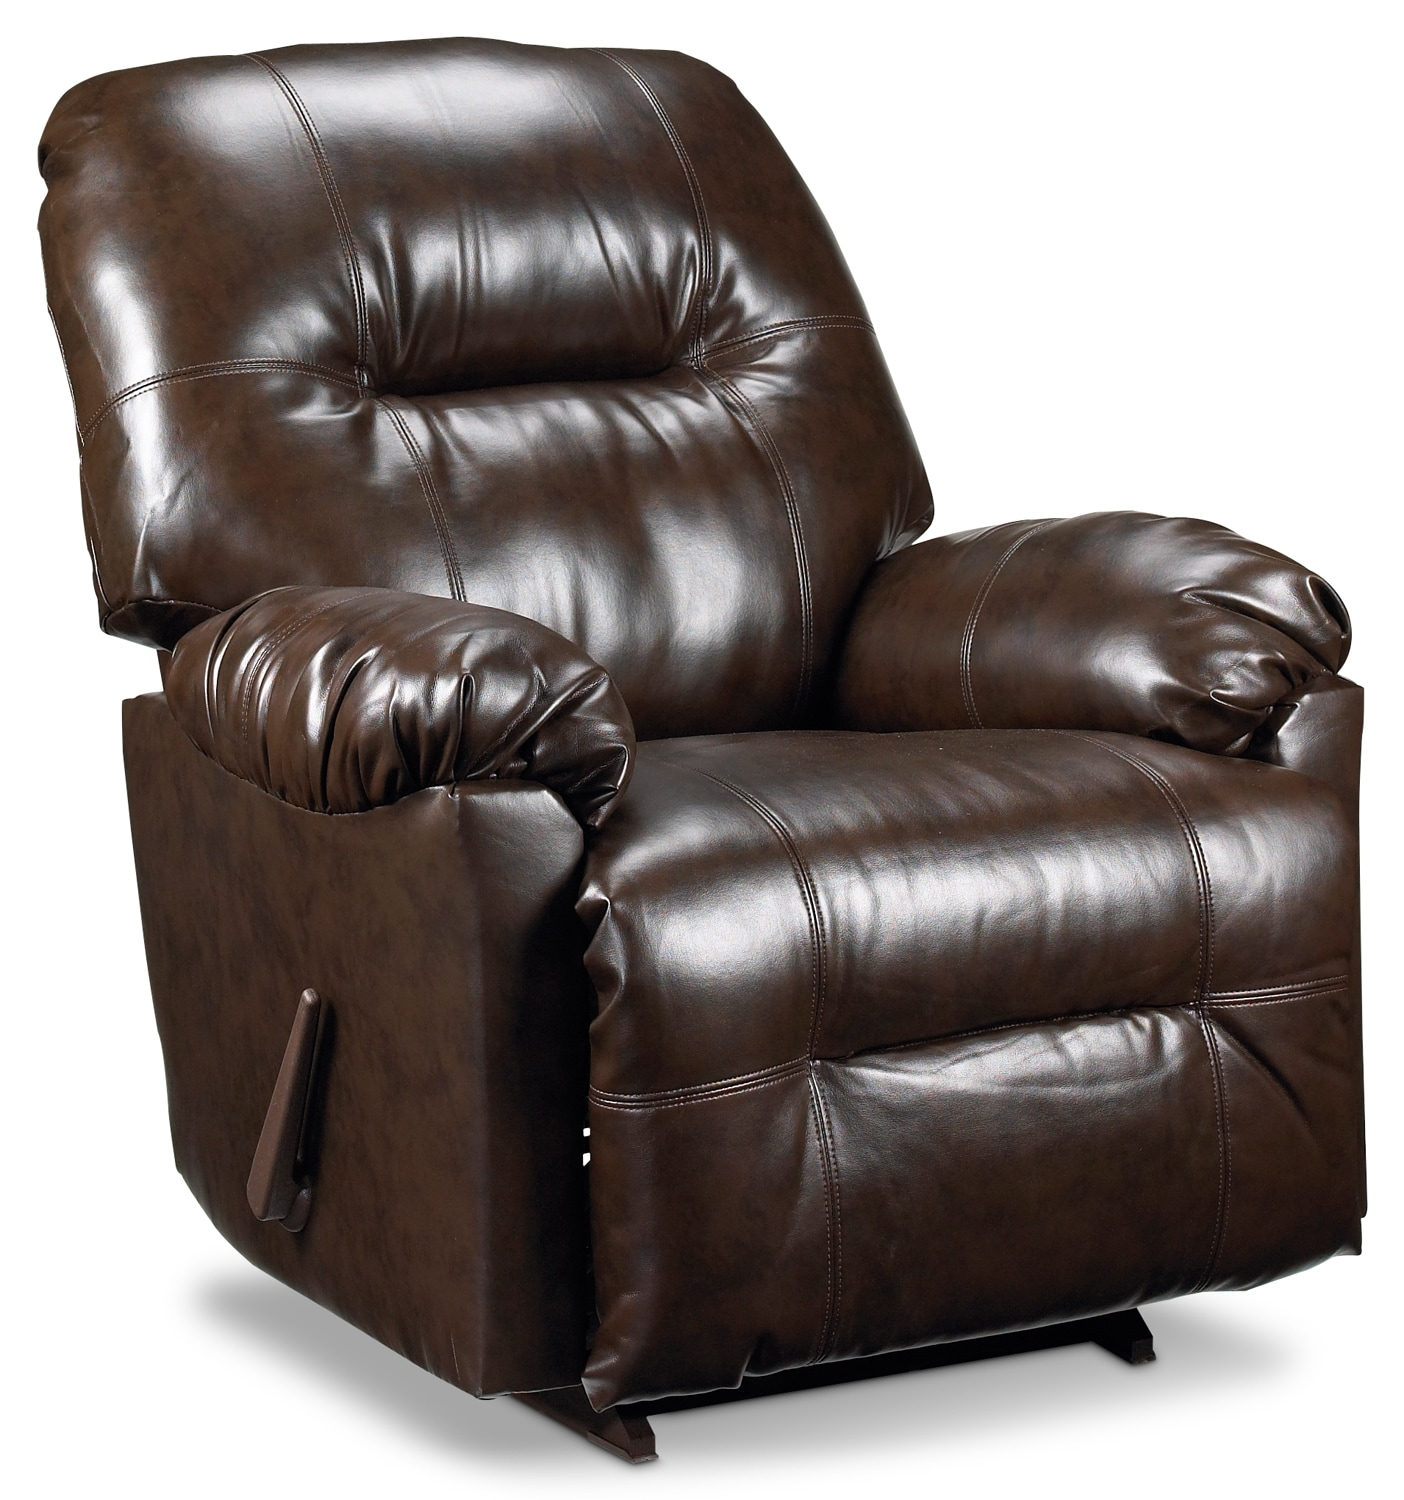 Living Room Furniture - Briar Rocker Recliner - Brown